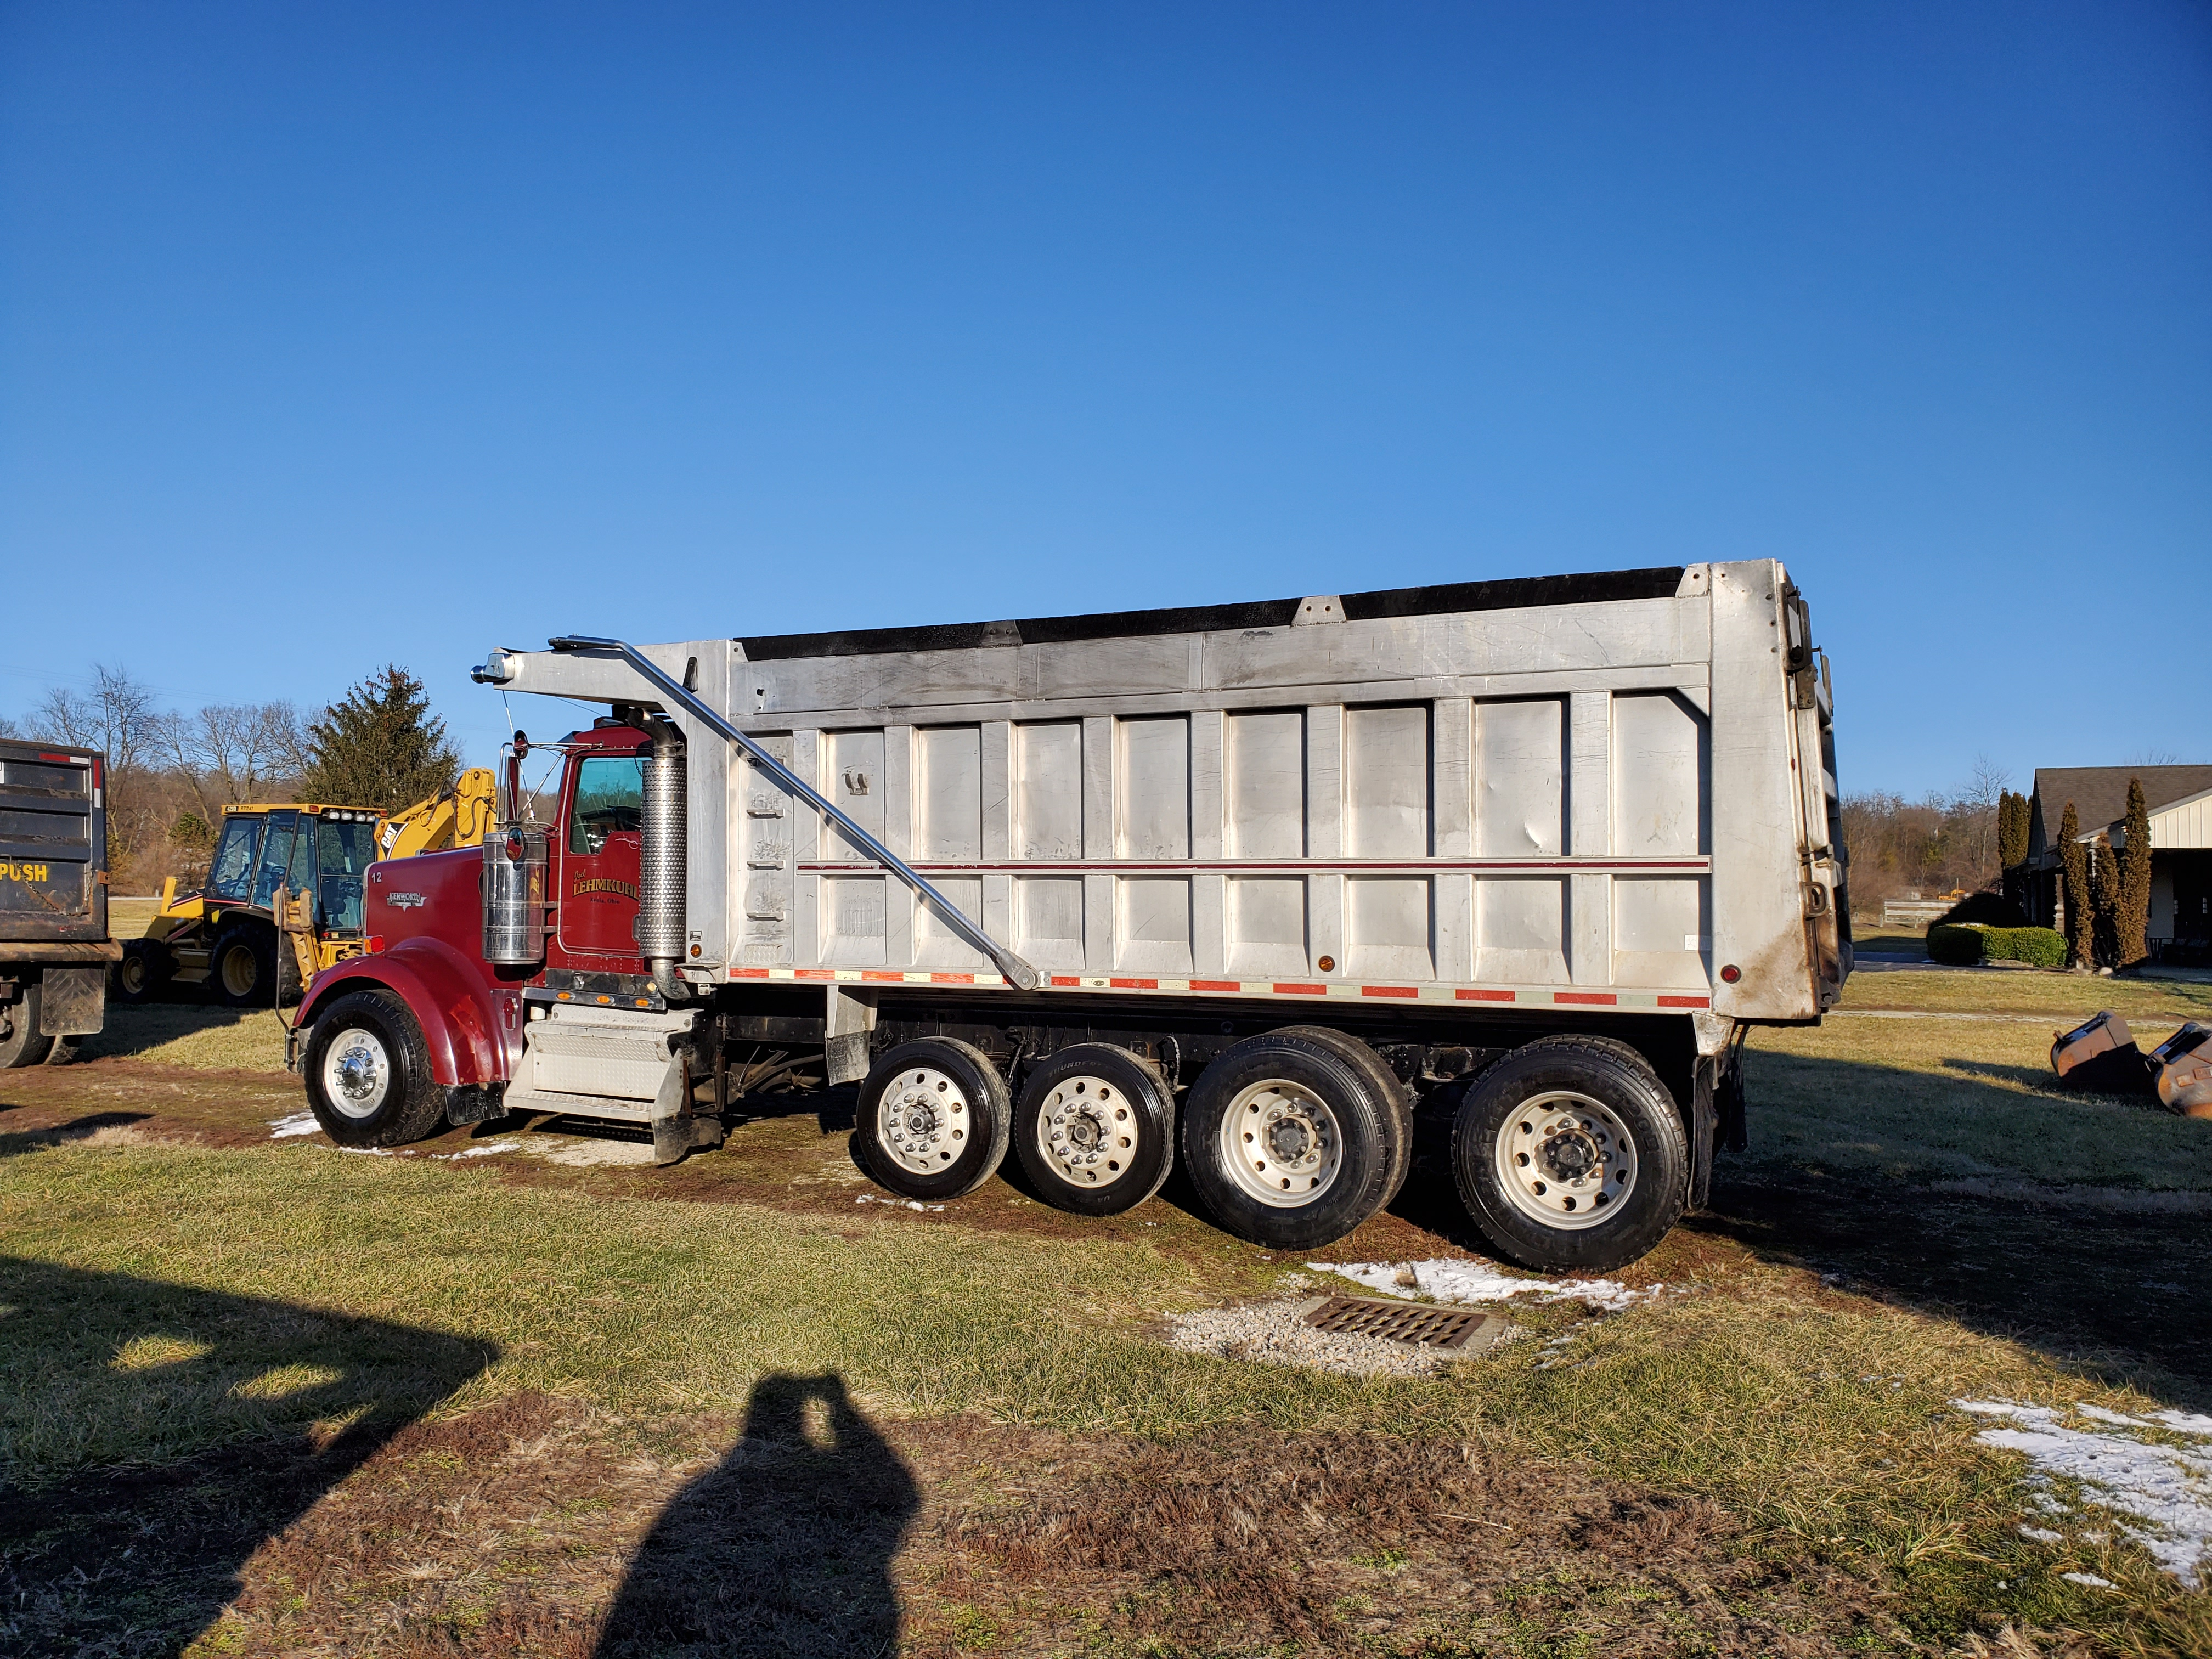 Lot 31 - 2003 Kenworth W900 8 x 4 Dump Truck, ISX-500 Engine, 500 HP, 18-Sp Transmission, Chalmers 800 Susp.